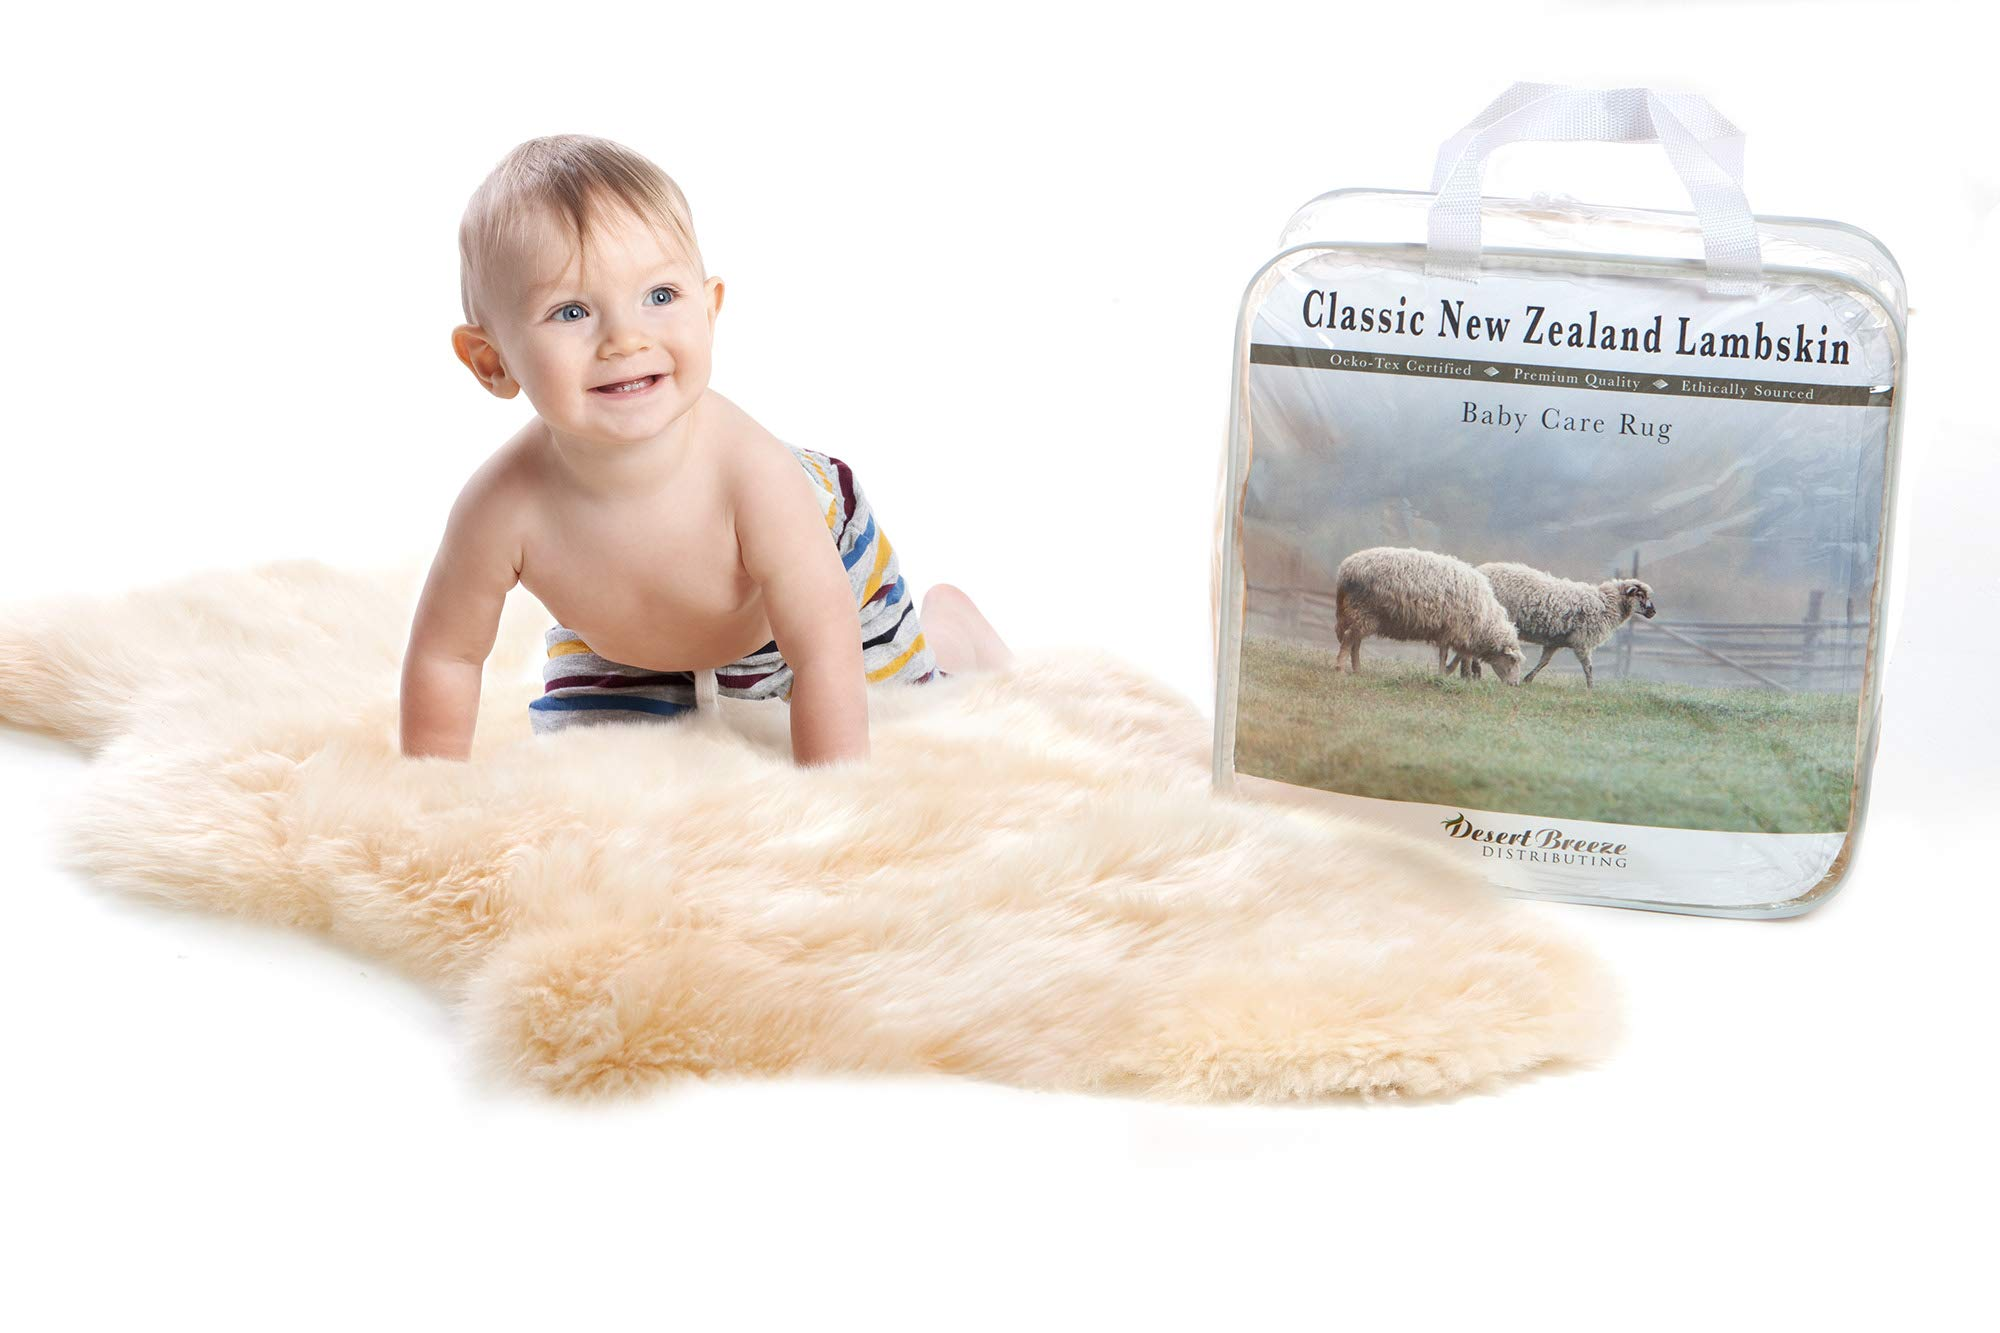 New Zealand Classic Lambskin, Ethically Sourced, Silky Soft Natural Length Wool, Un-Shorn Baby Care Rug, Premium Quality, Large Size 34'' to 36'' by Desert Breeze Distributing